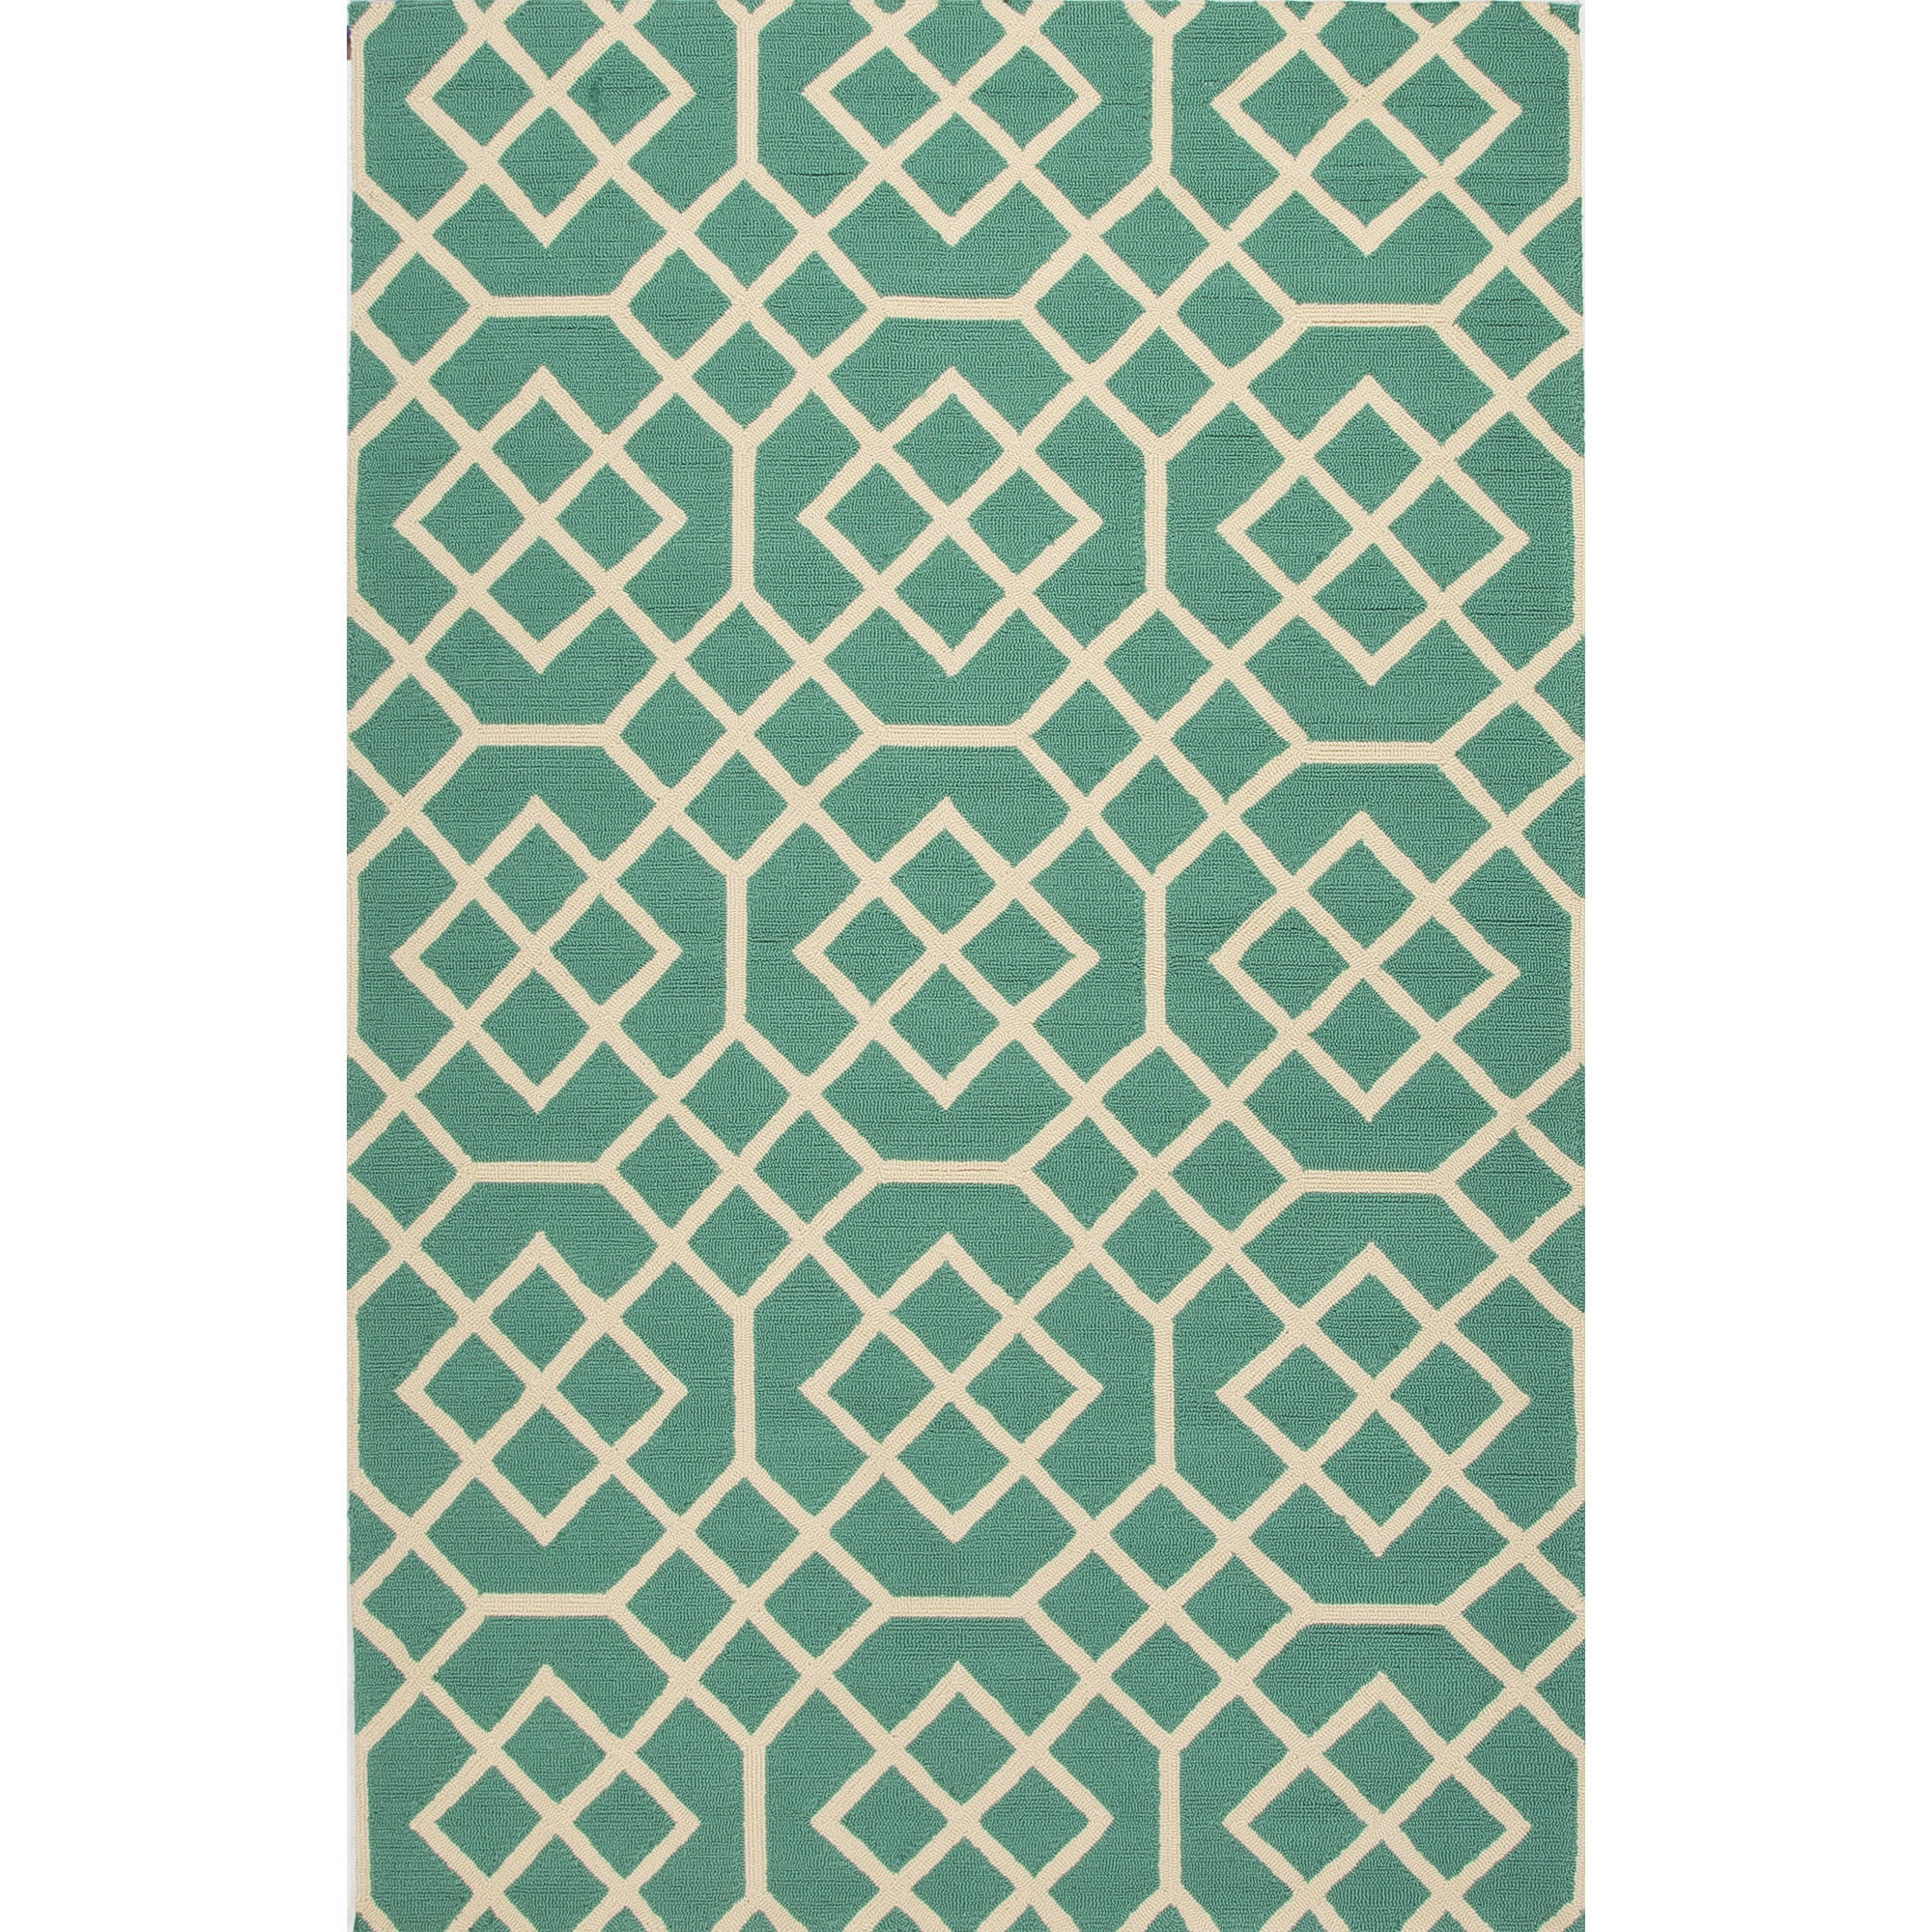 Jaipur Rugs Indoor-Outdoor Geometric Pattern Blue/Ivory Polypropylene Area Rug